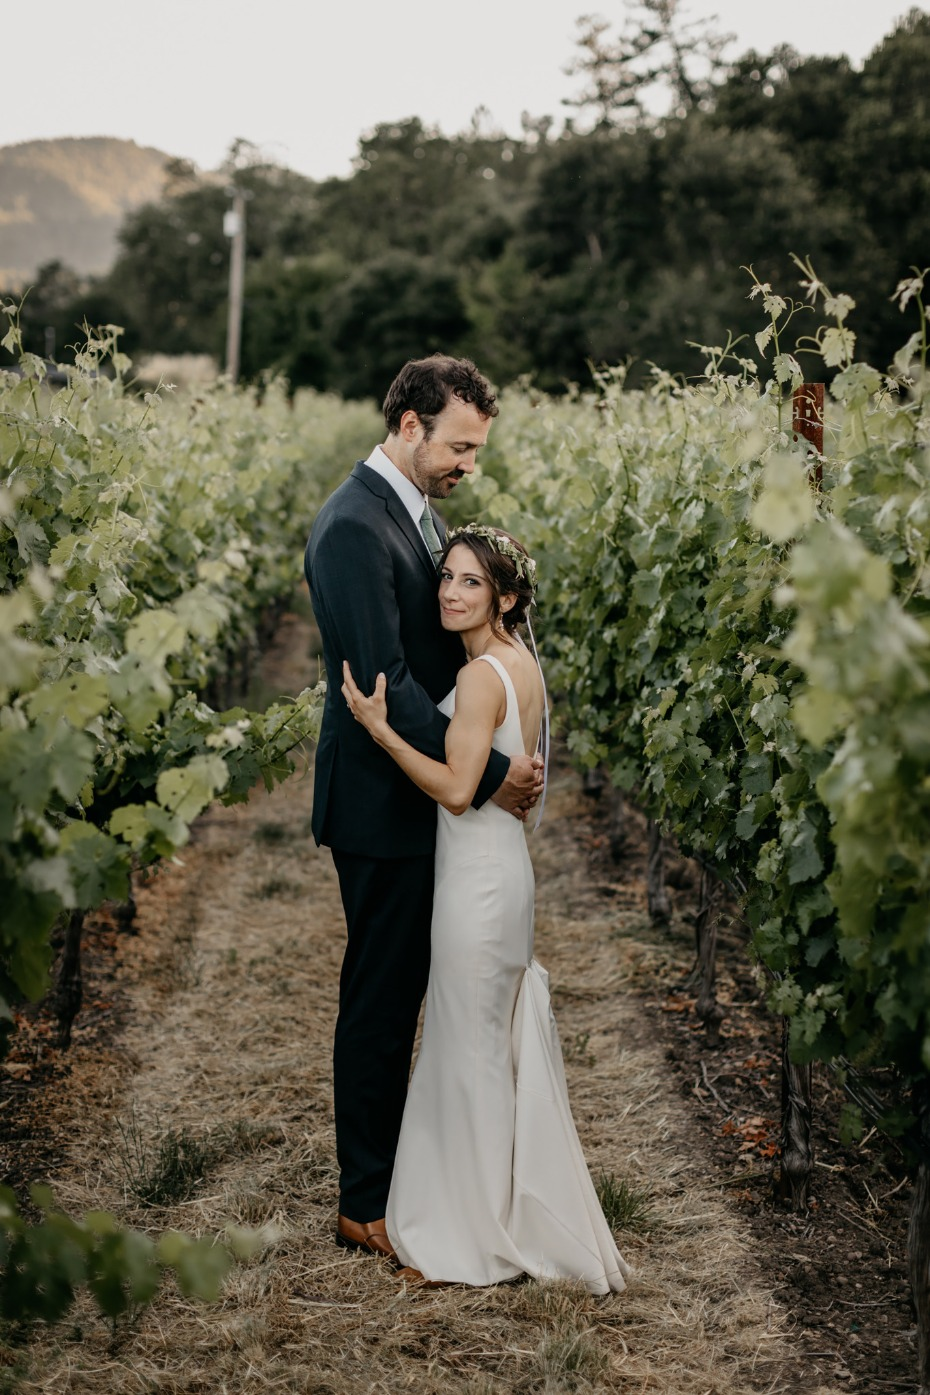 Family Vineyard wedding